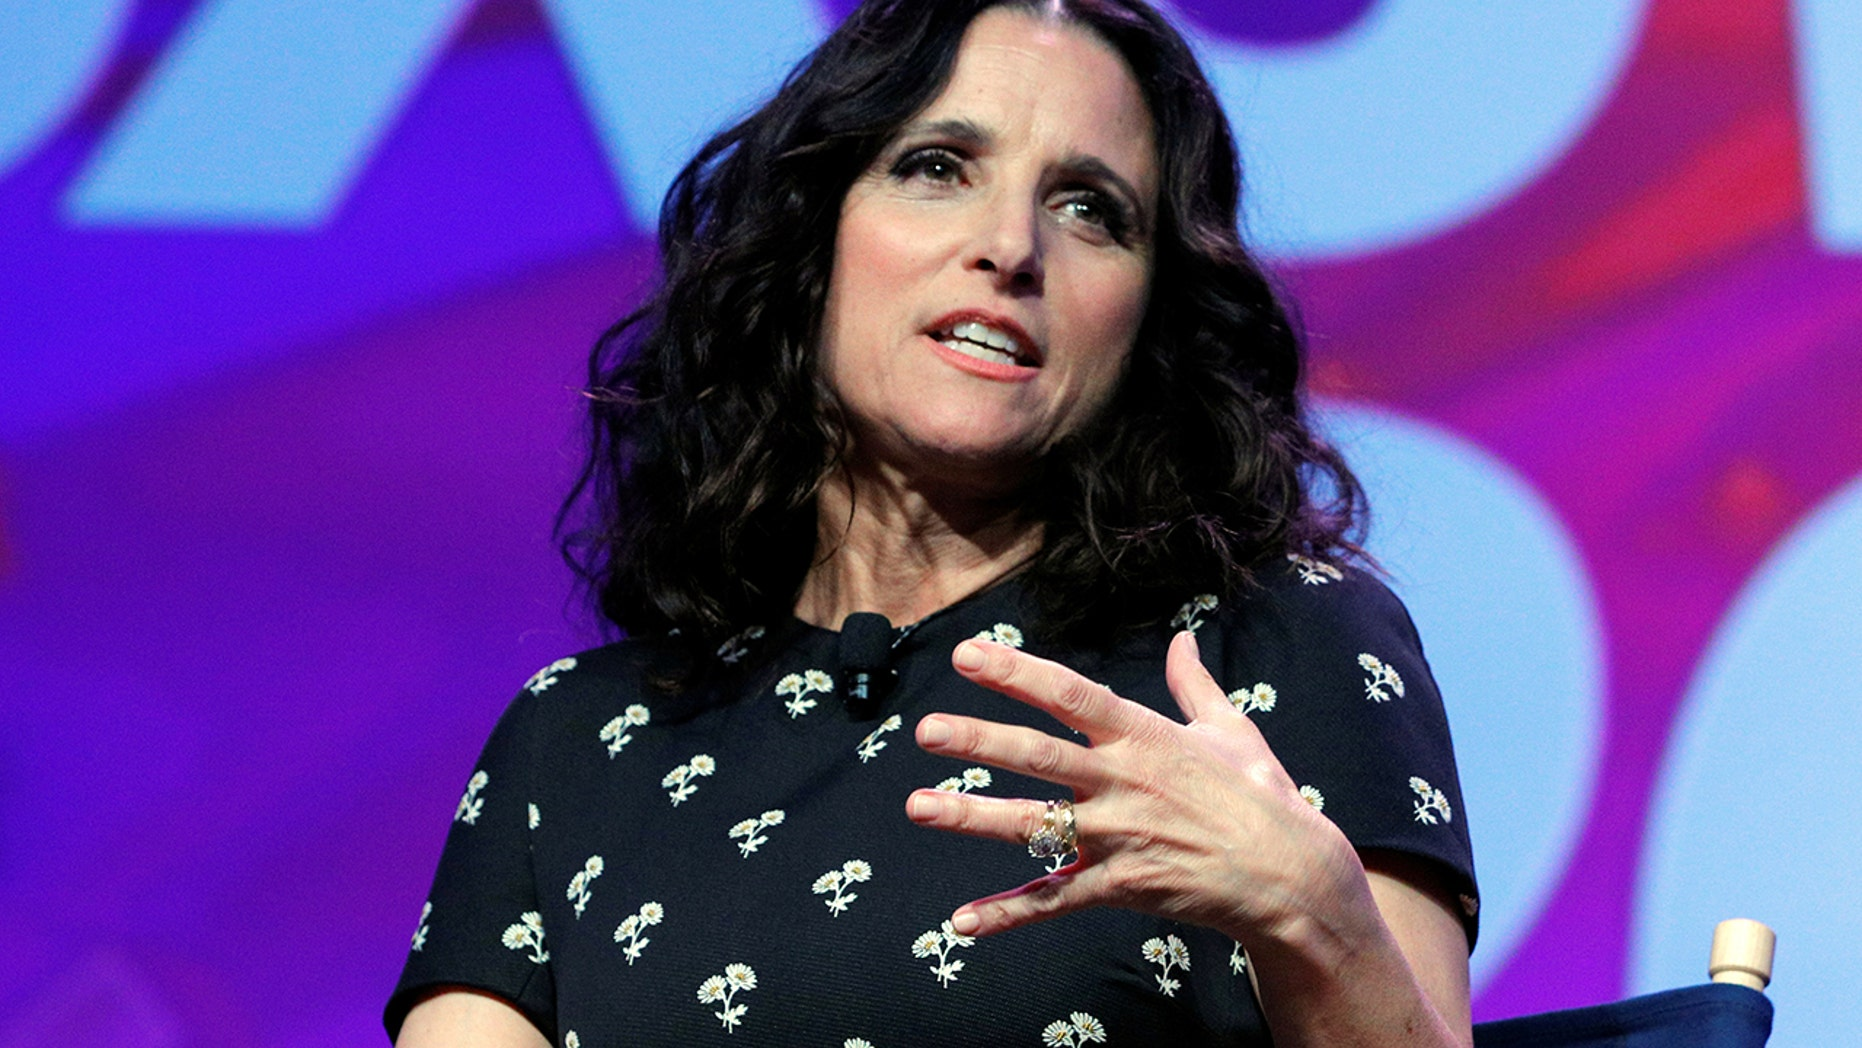 Julia Louis-Dreyfus opens up about beating cancer